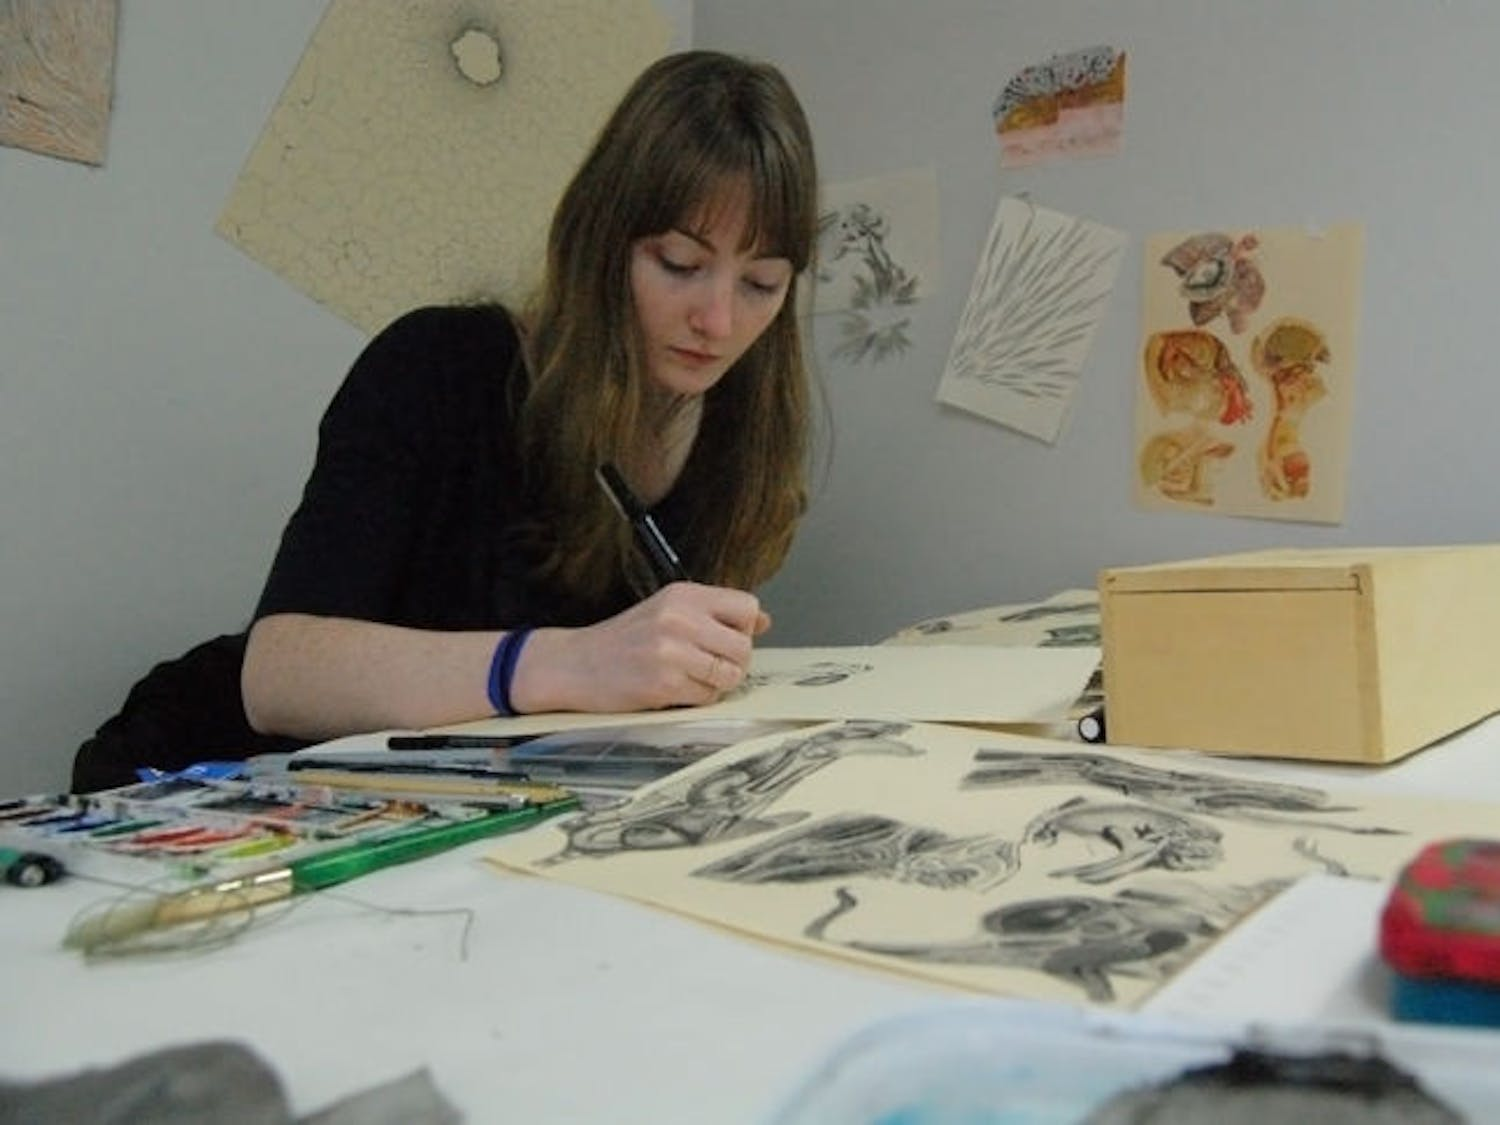 """Lily King, a 21-year-old UF drawing senior, draws anatomical figures she saw in various medical textbooks. She uses a micron pen to illustrate her mad scientist collages, and her work """"Contained"""" will be featured in Friday's exhibition."""